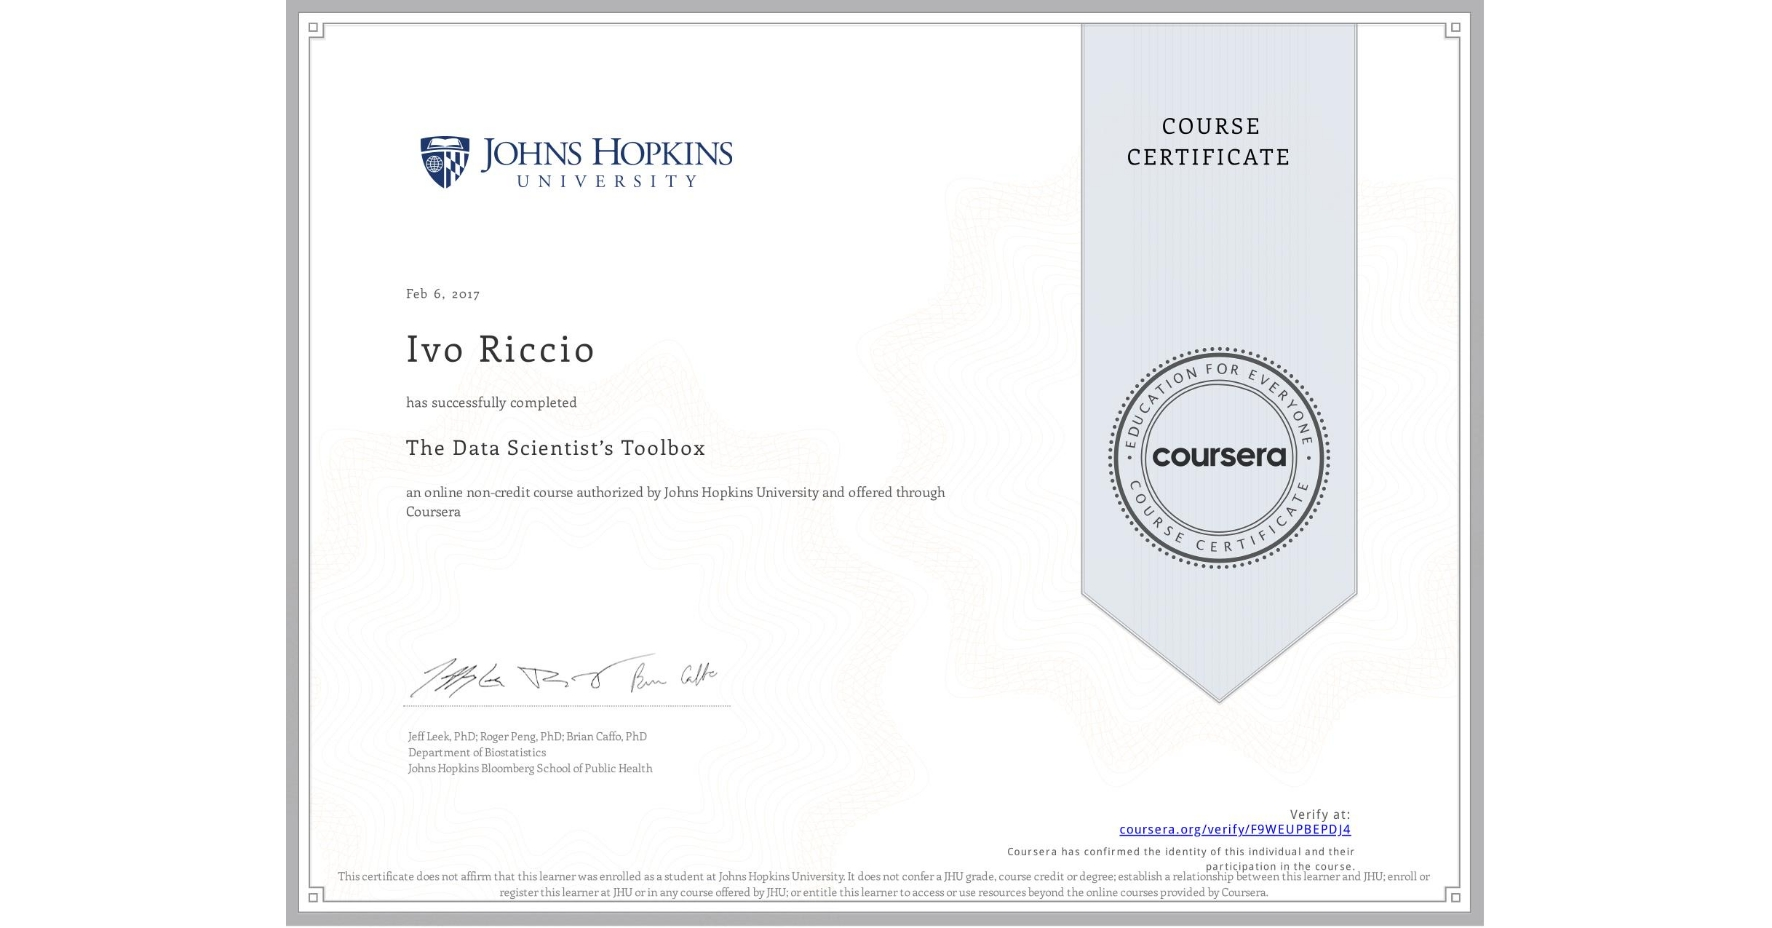 View certificate for Ivo Riccio, The Data Scientist's Toolbox, an online non-credit course authorized by Johns Hopkins University and offered through Coursera